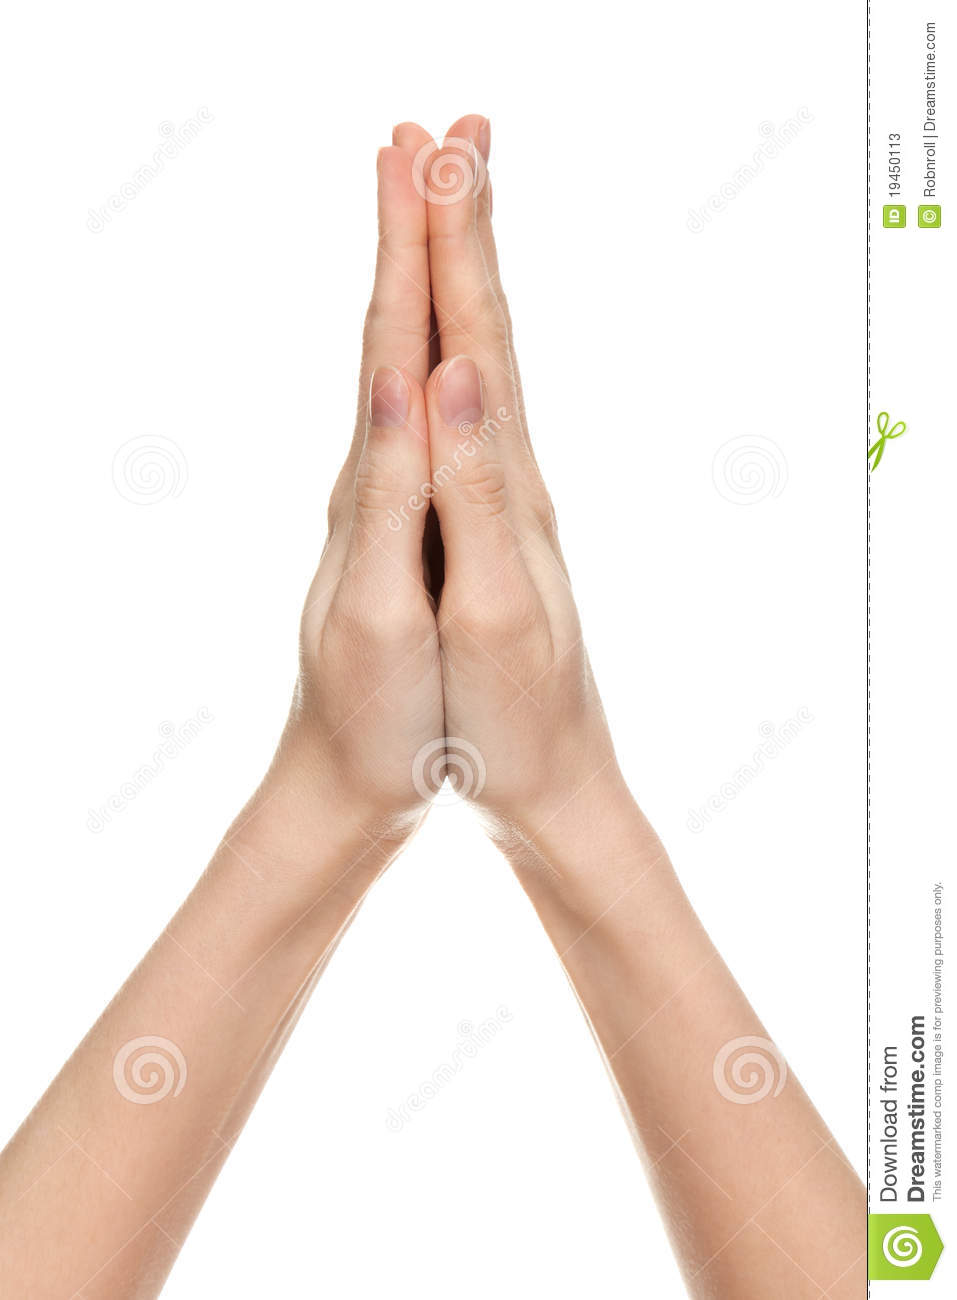 Praying Hands Stock Photos Images Dreamstime - Praying hands